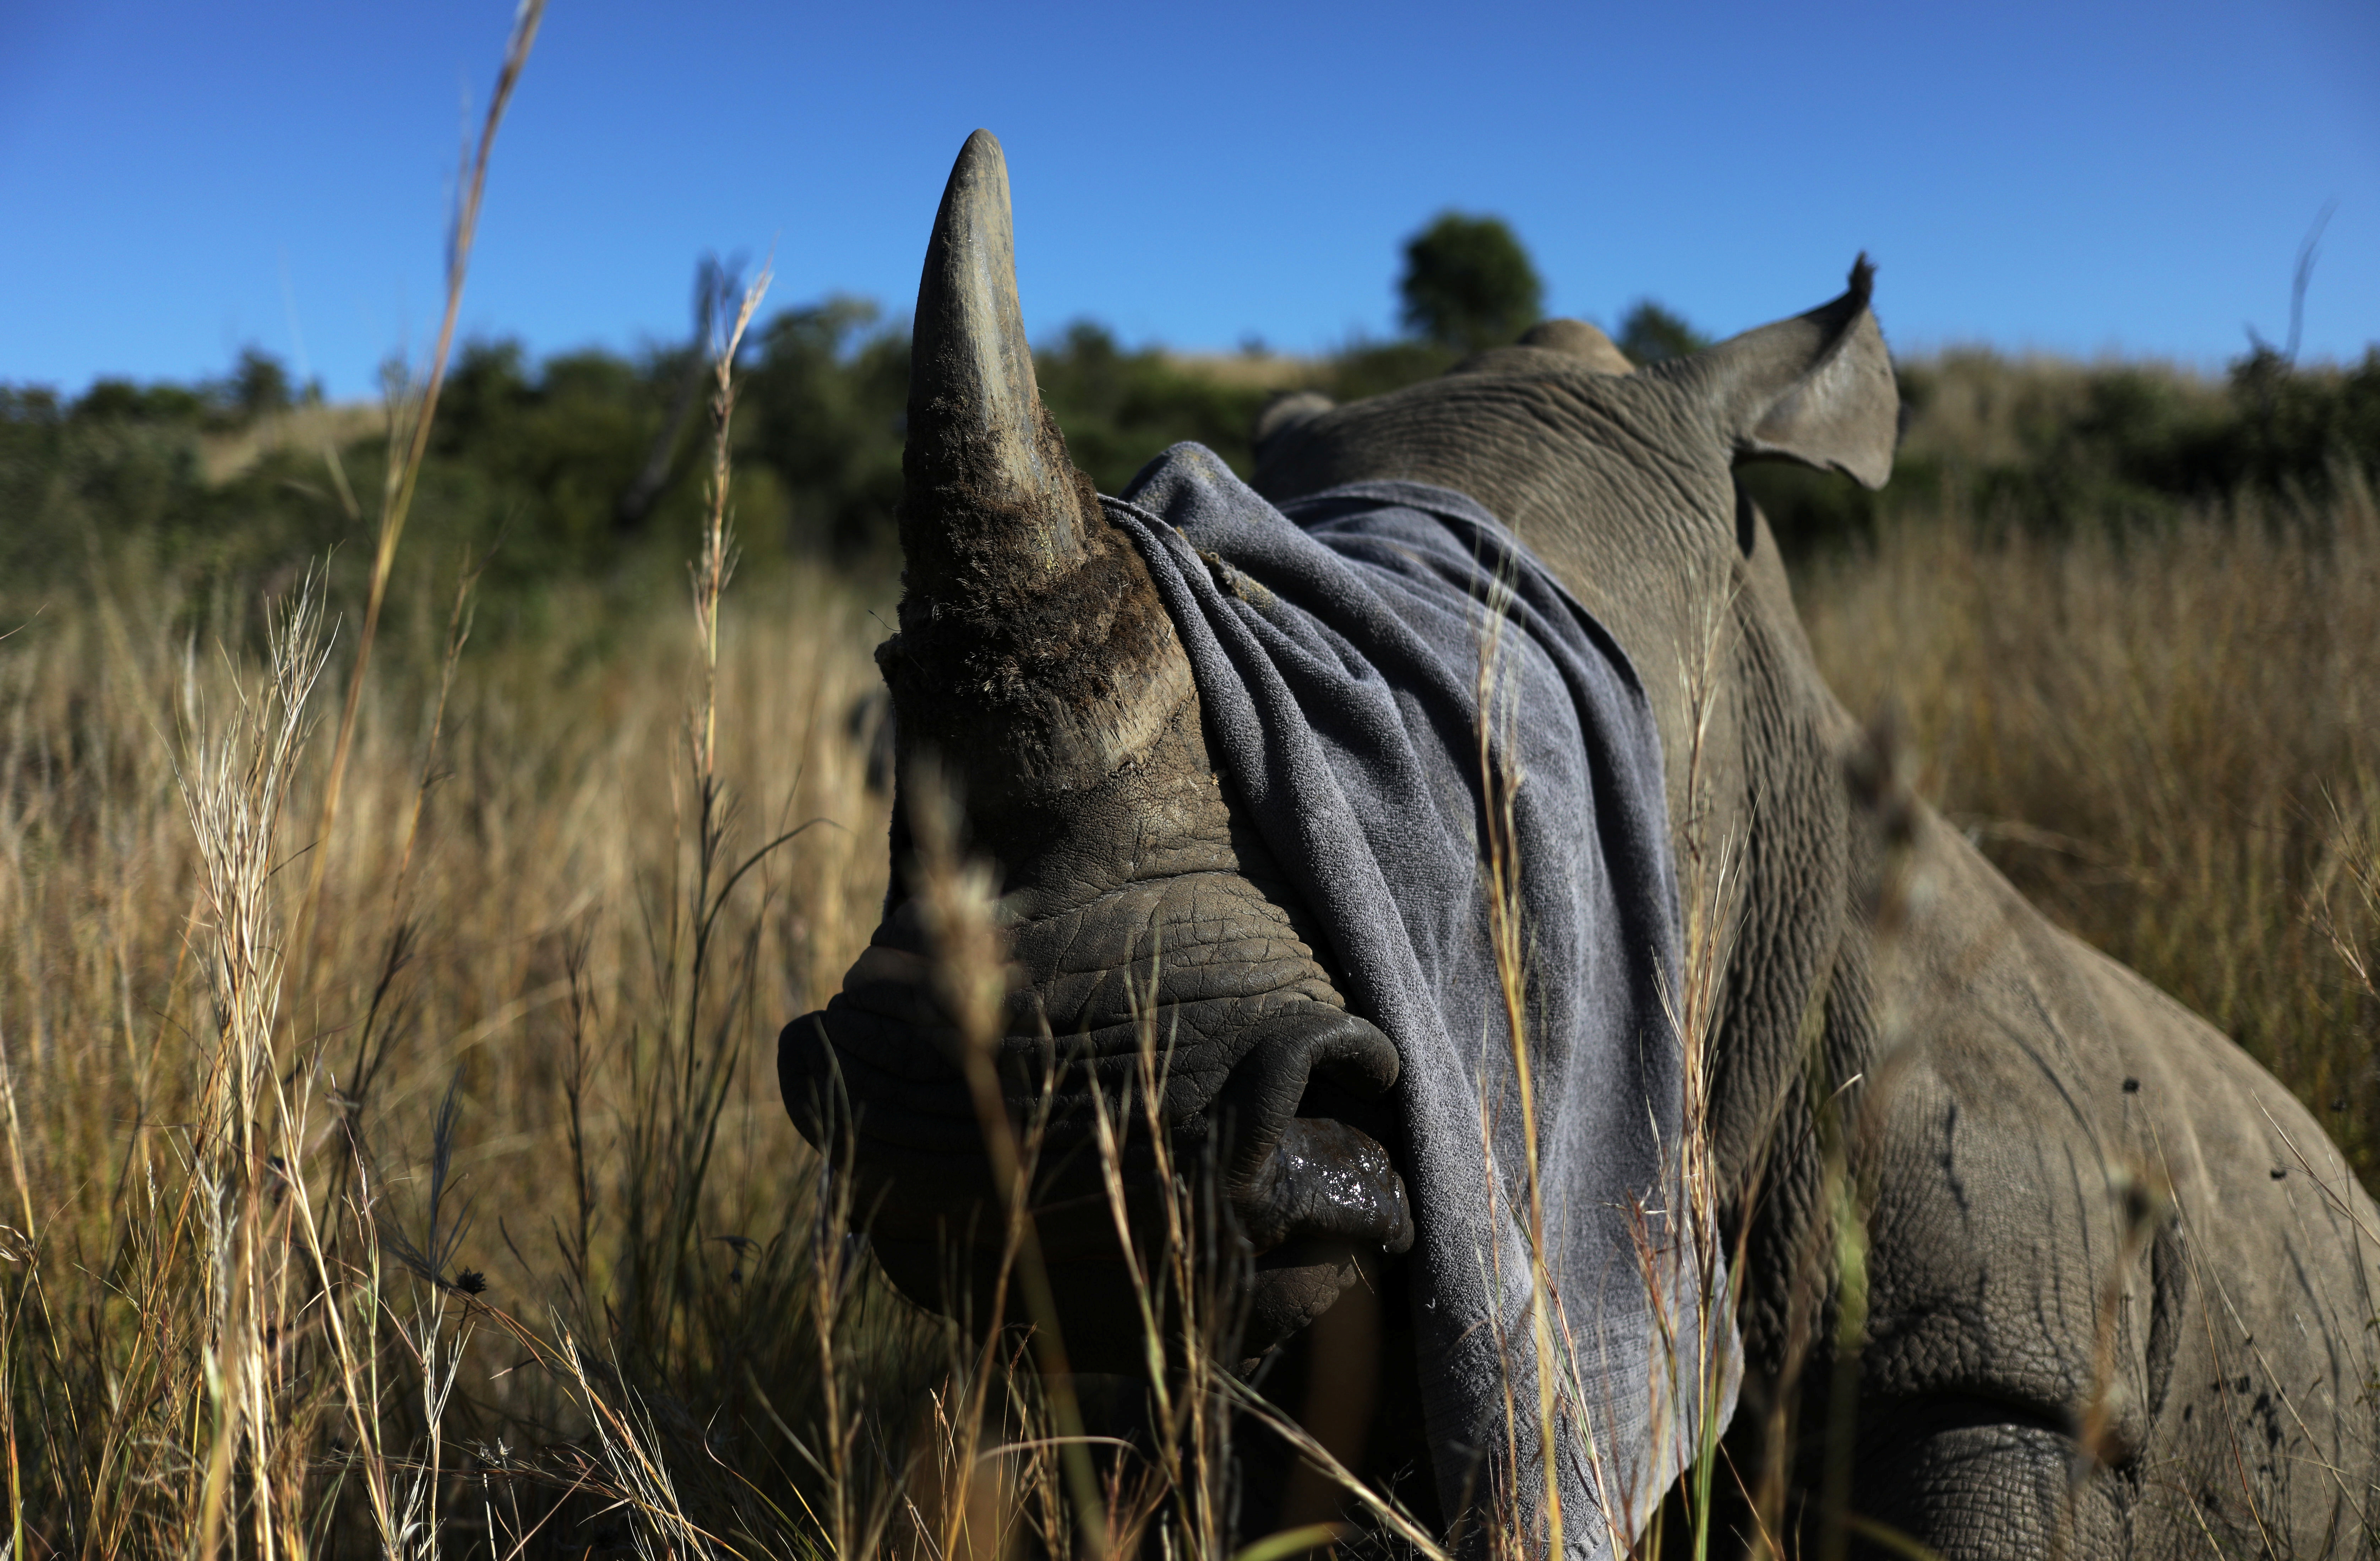 A towel is used to cover the eyes of a tranquillised rhino before it is dehorned in an effort to deter poaching, amid the spread of the coronavirus disease (COVID-19), at the Pilanesberg Game Reserve in North West Province, South Africa, May 12, 2020.   REUTERS/Siphiwe Sibeko